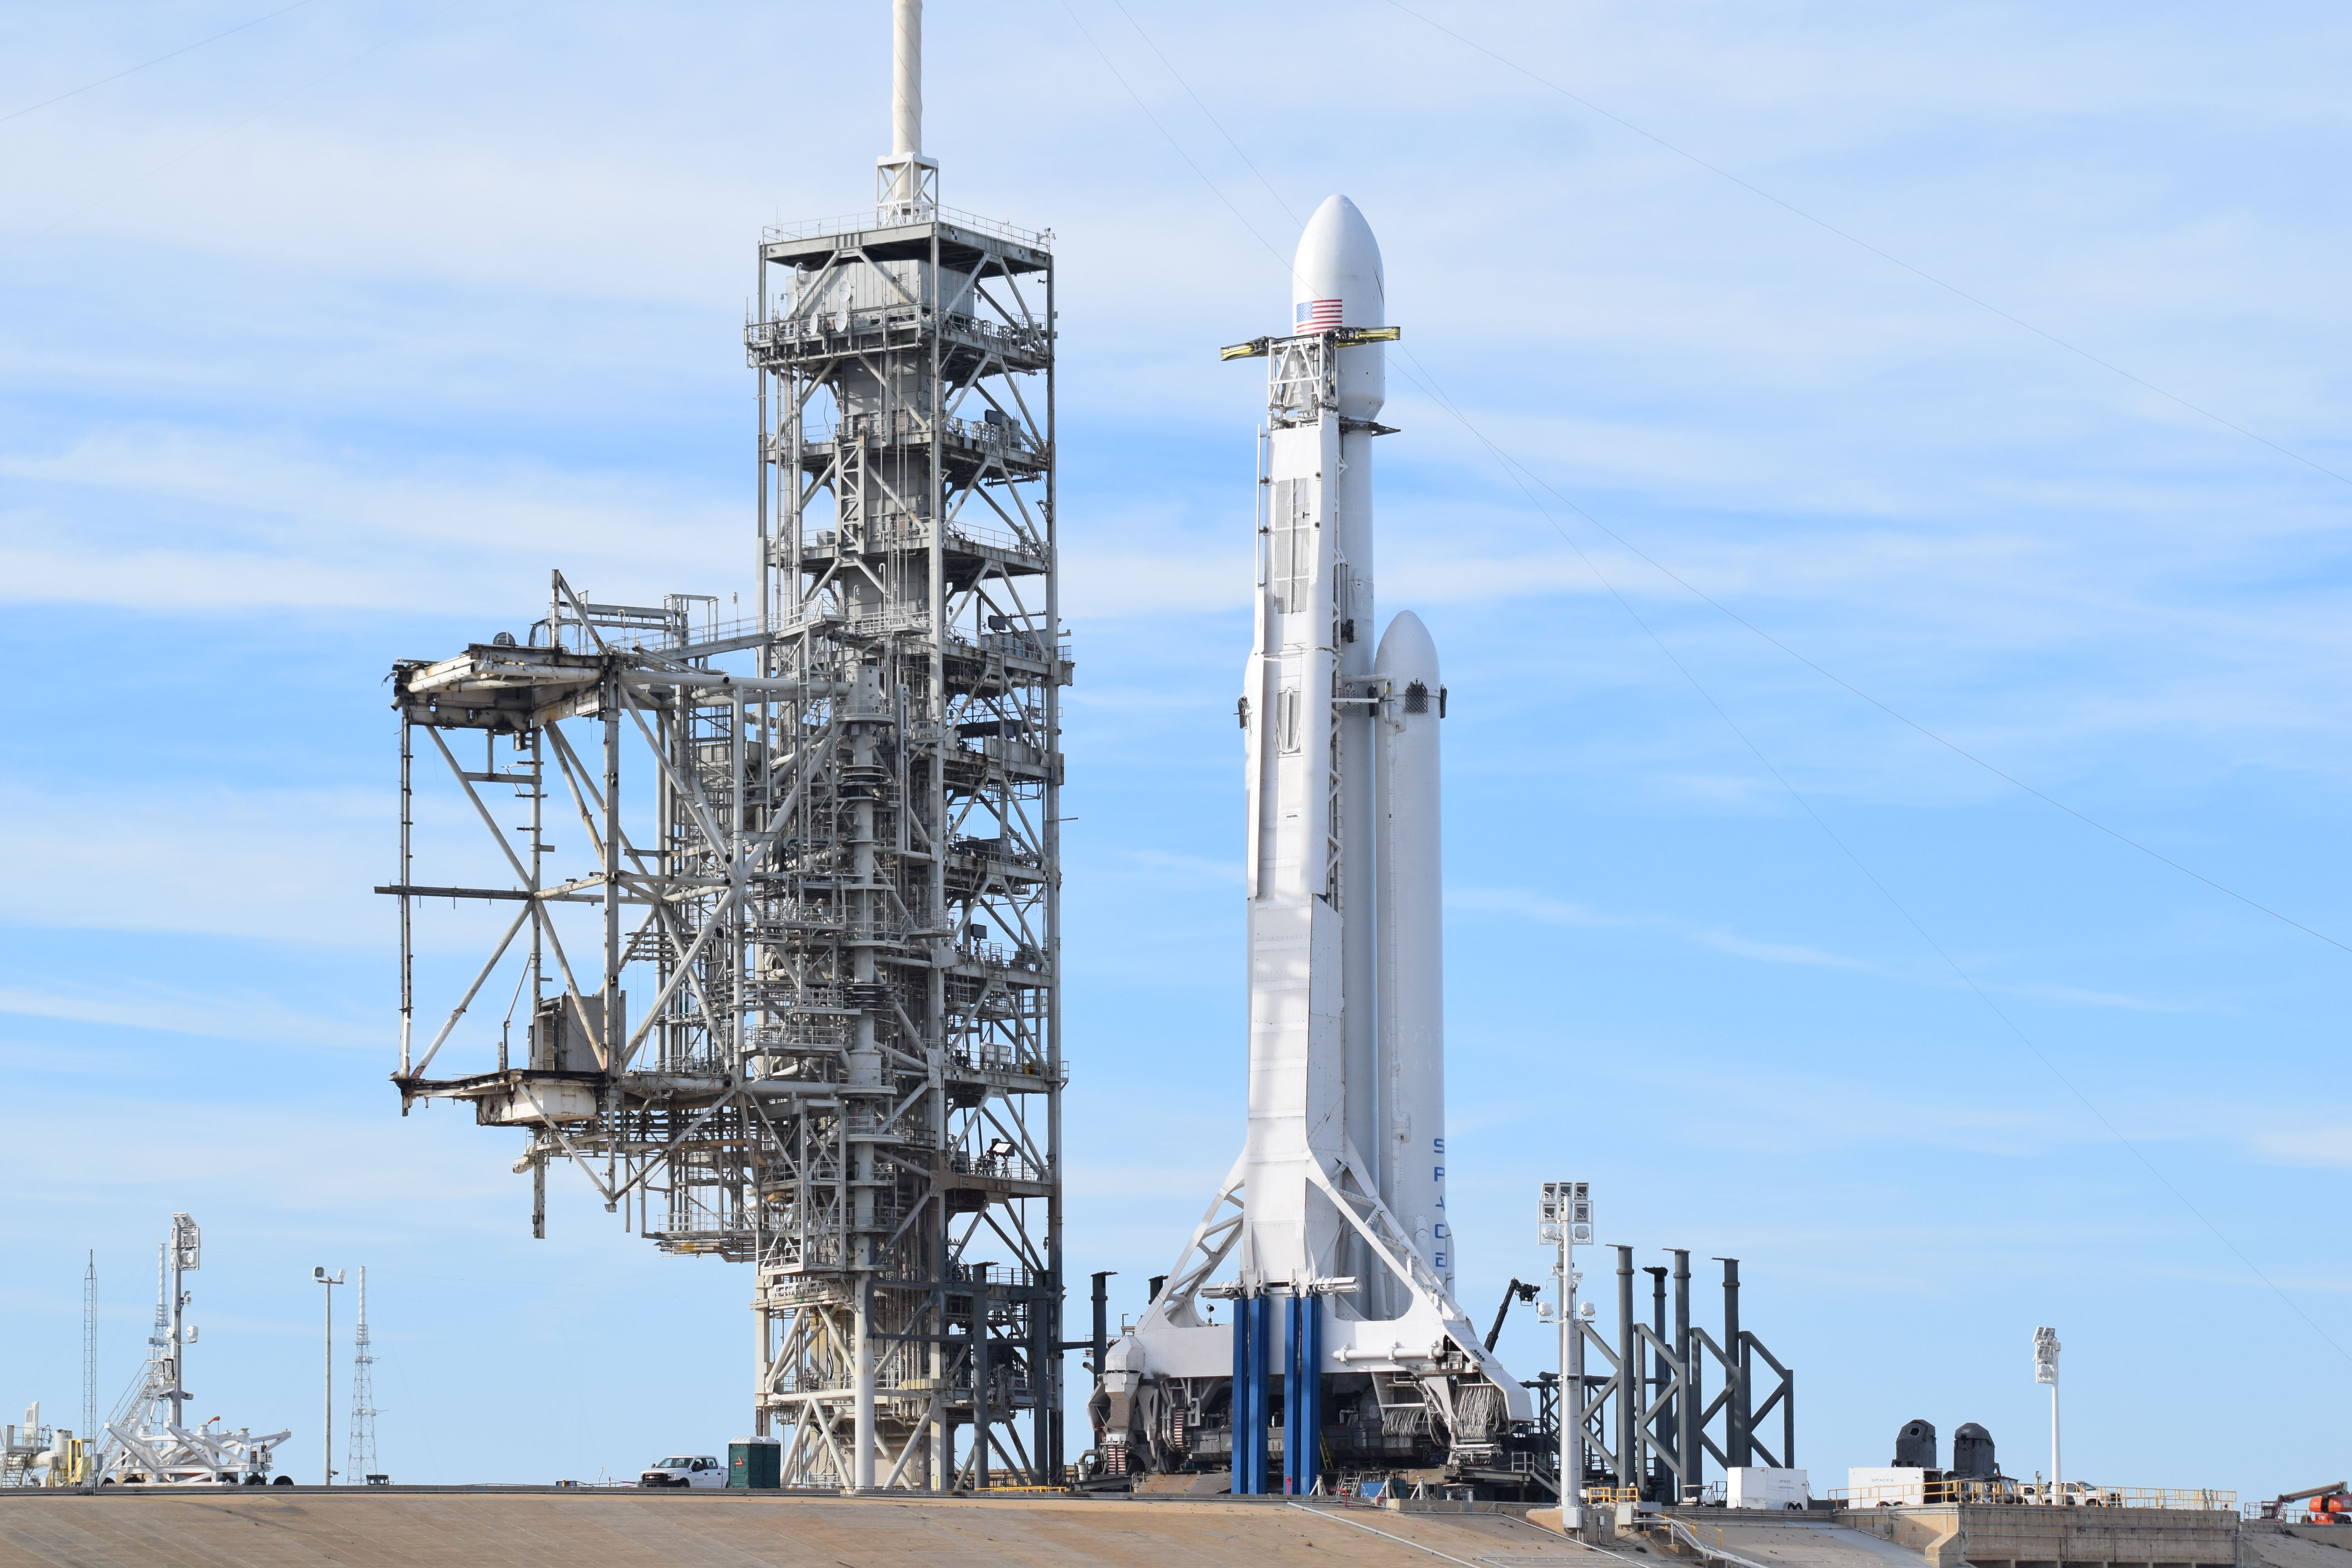 Spacex Successfully Launches Falcon Heavy Rocket On Maiden